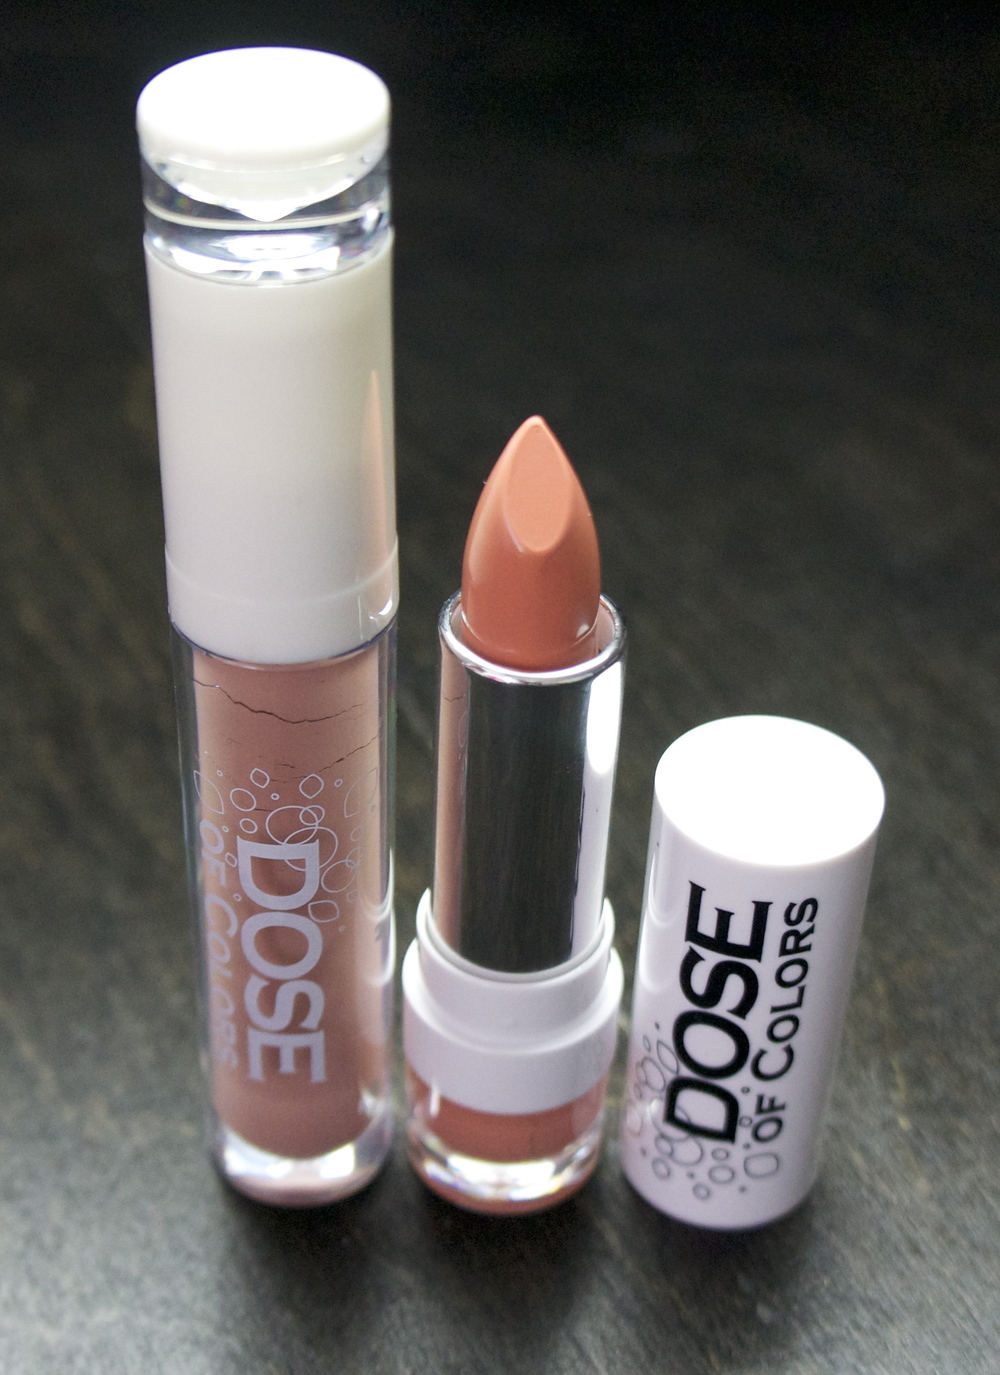 Dose of Colors - Lipgloss (Undressed), Lipstick (Angelic)